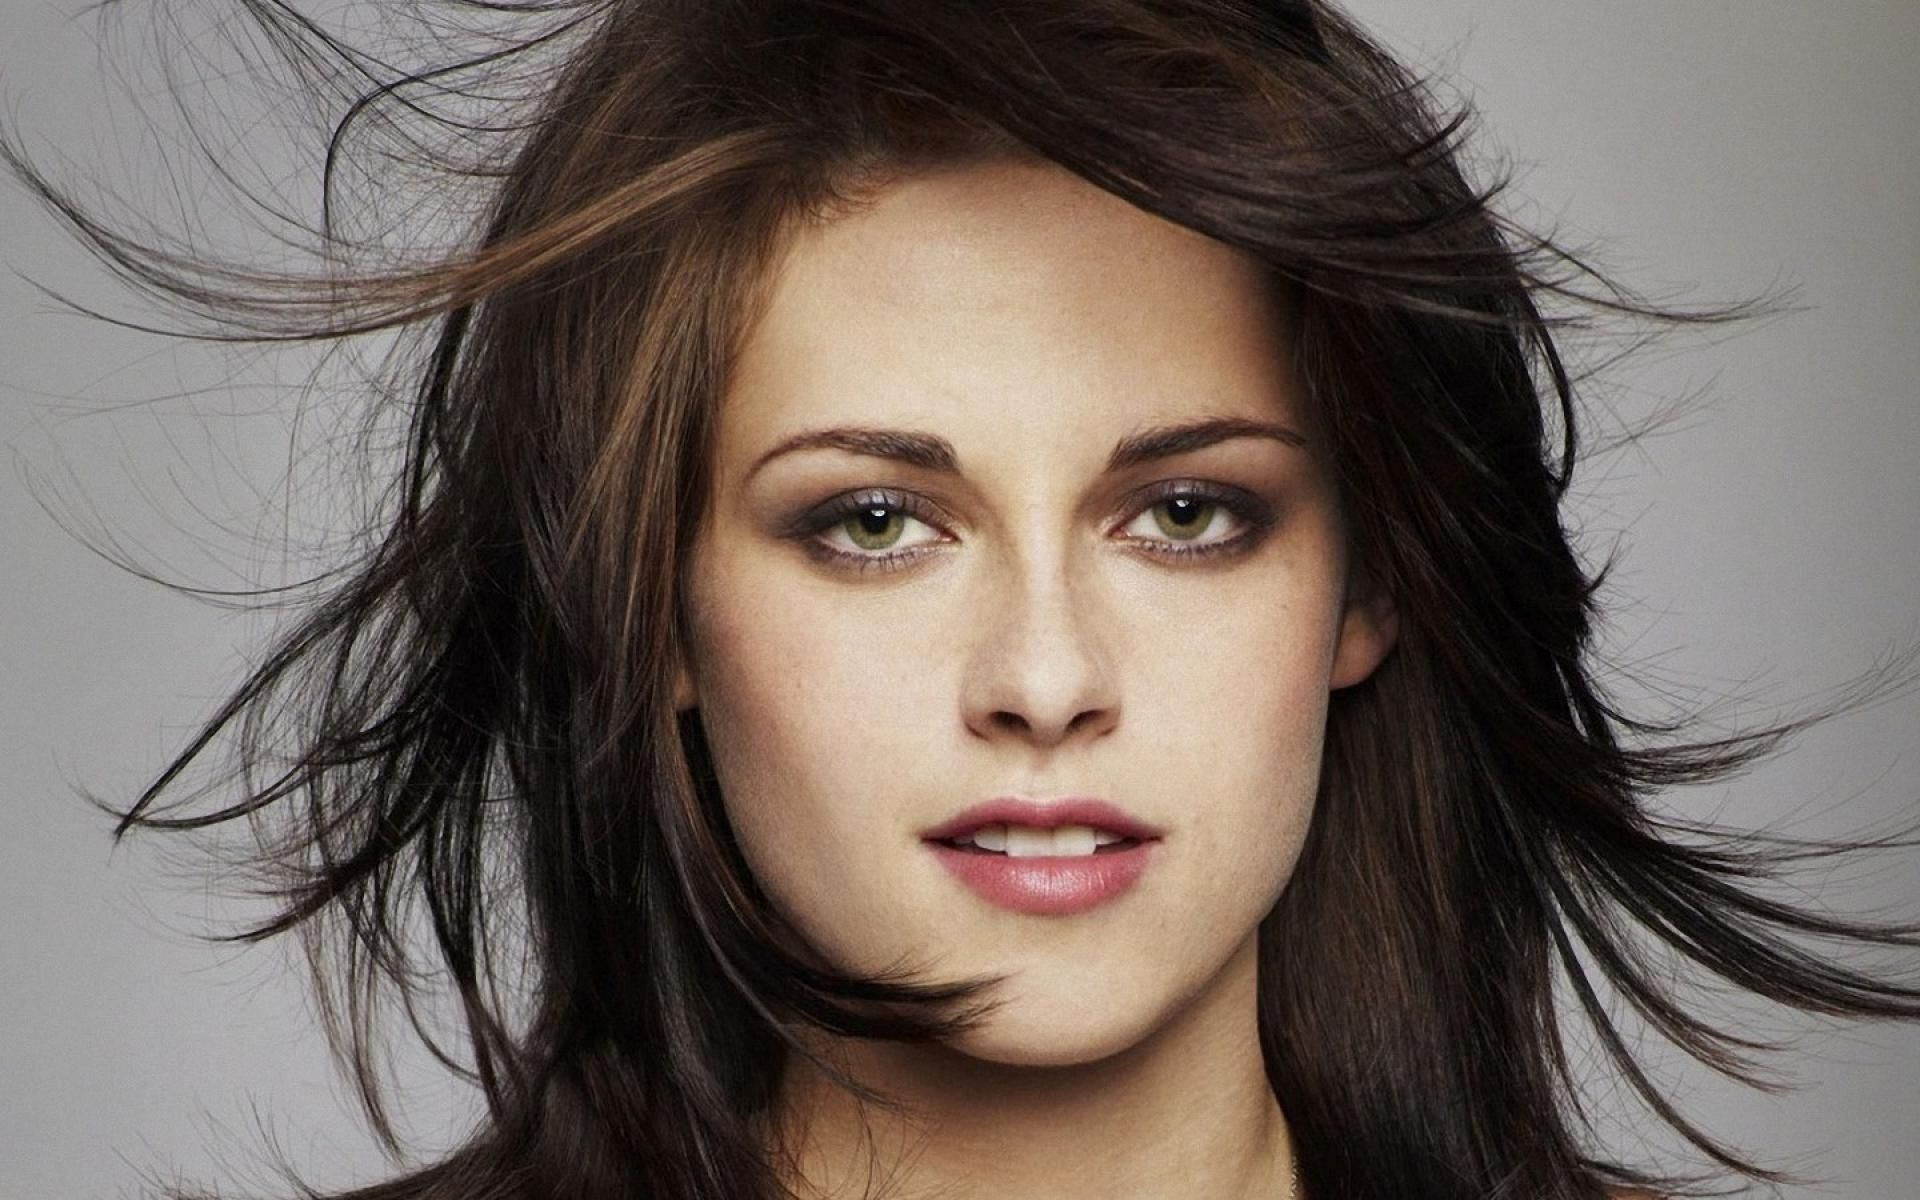 K ultra hd kristen stewart wallpapers hd desktop backgrounds 1024 k ultra hd kristen stewart wallpapers hd desktop backgrounds 1024768 kristen stewart pics altavistaventures Images